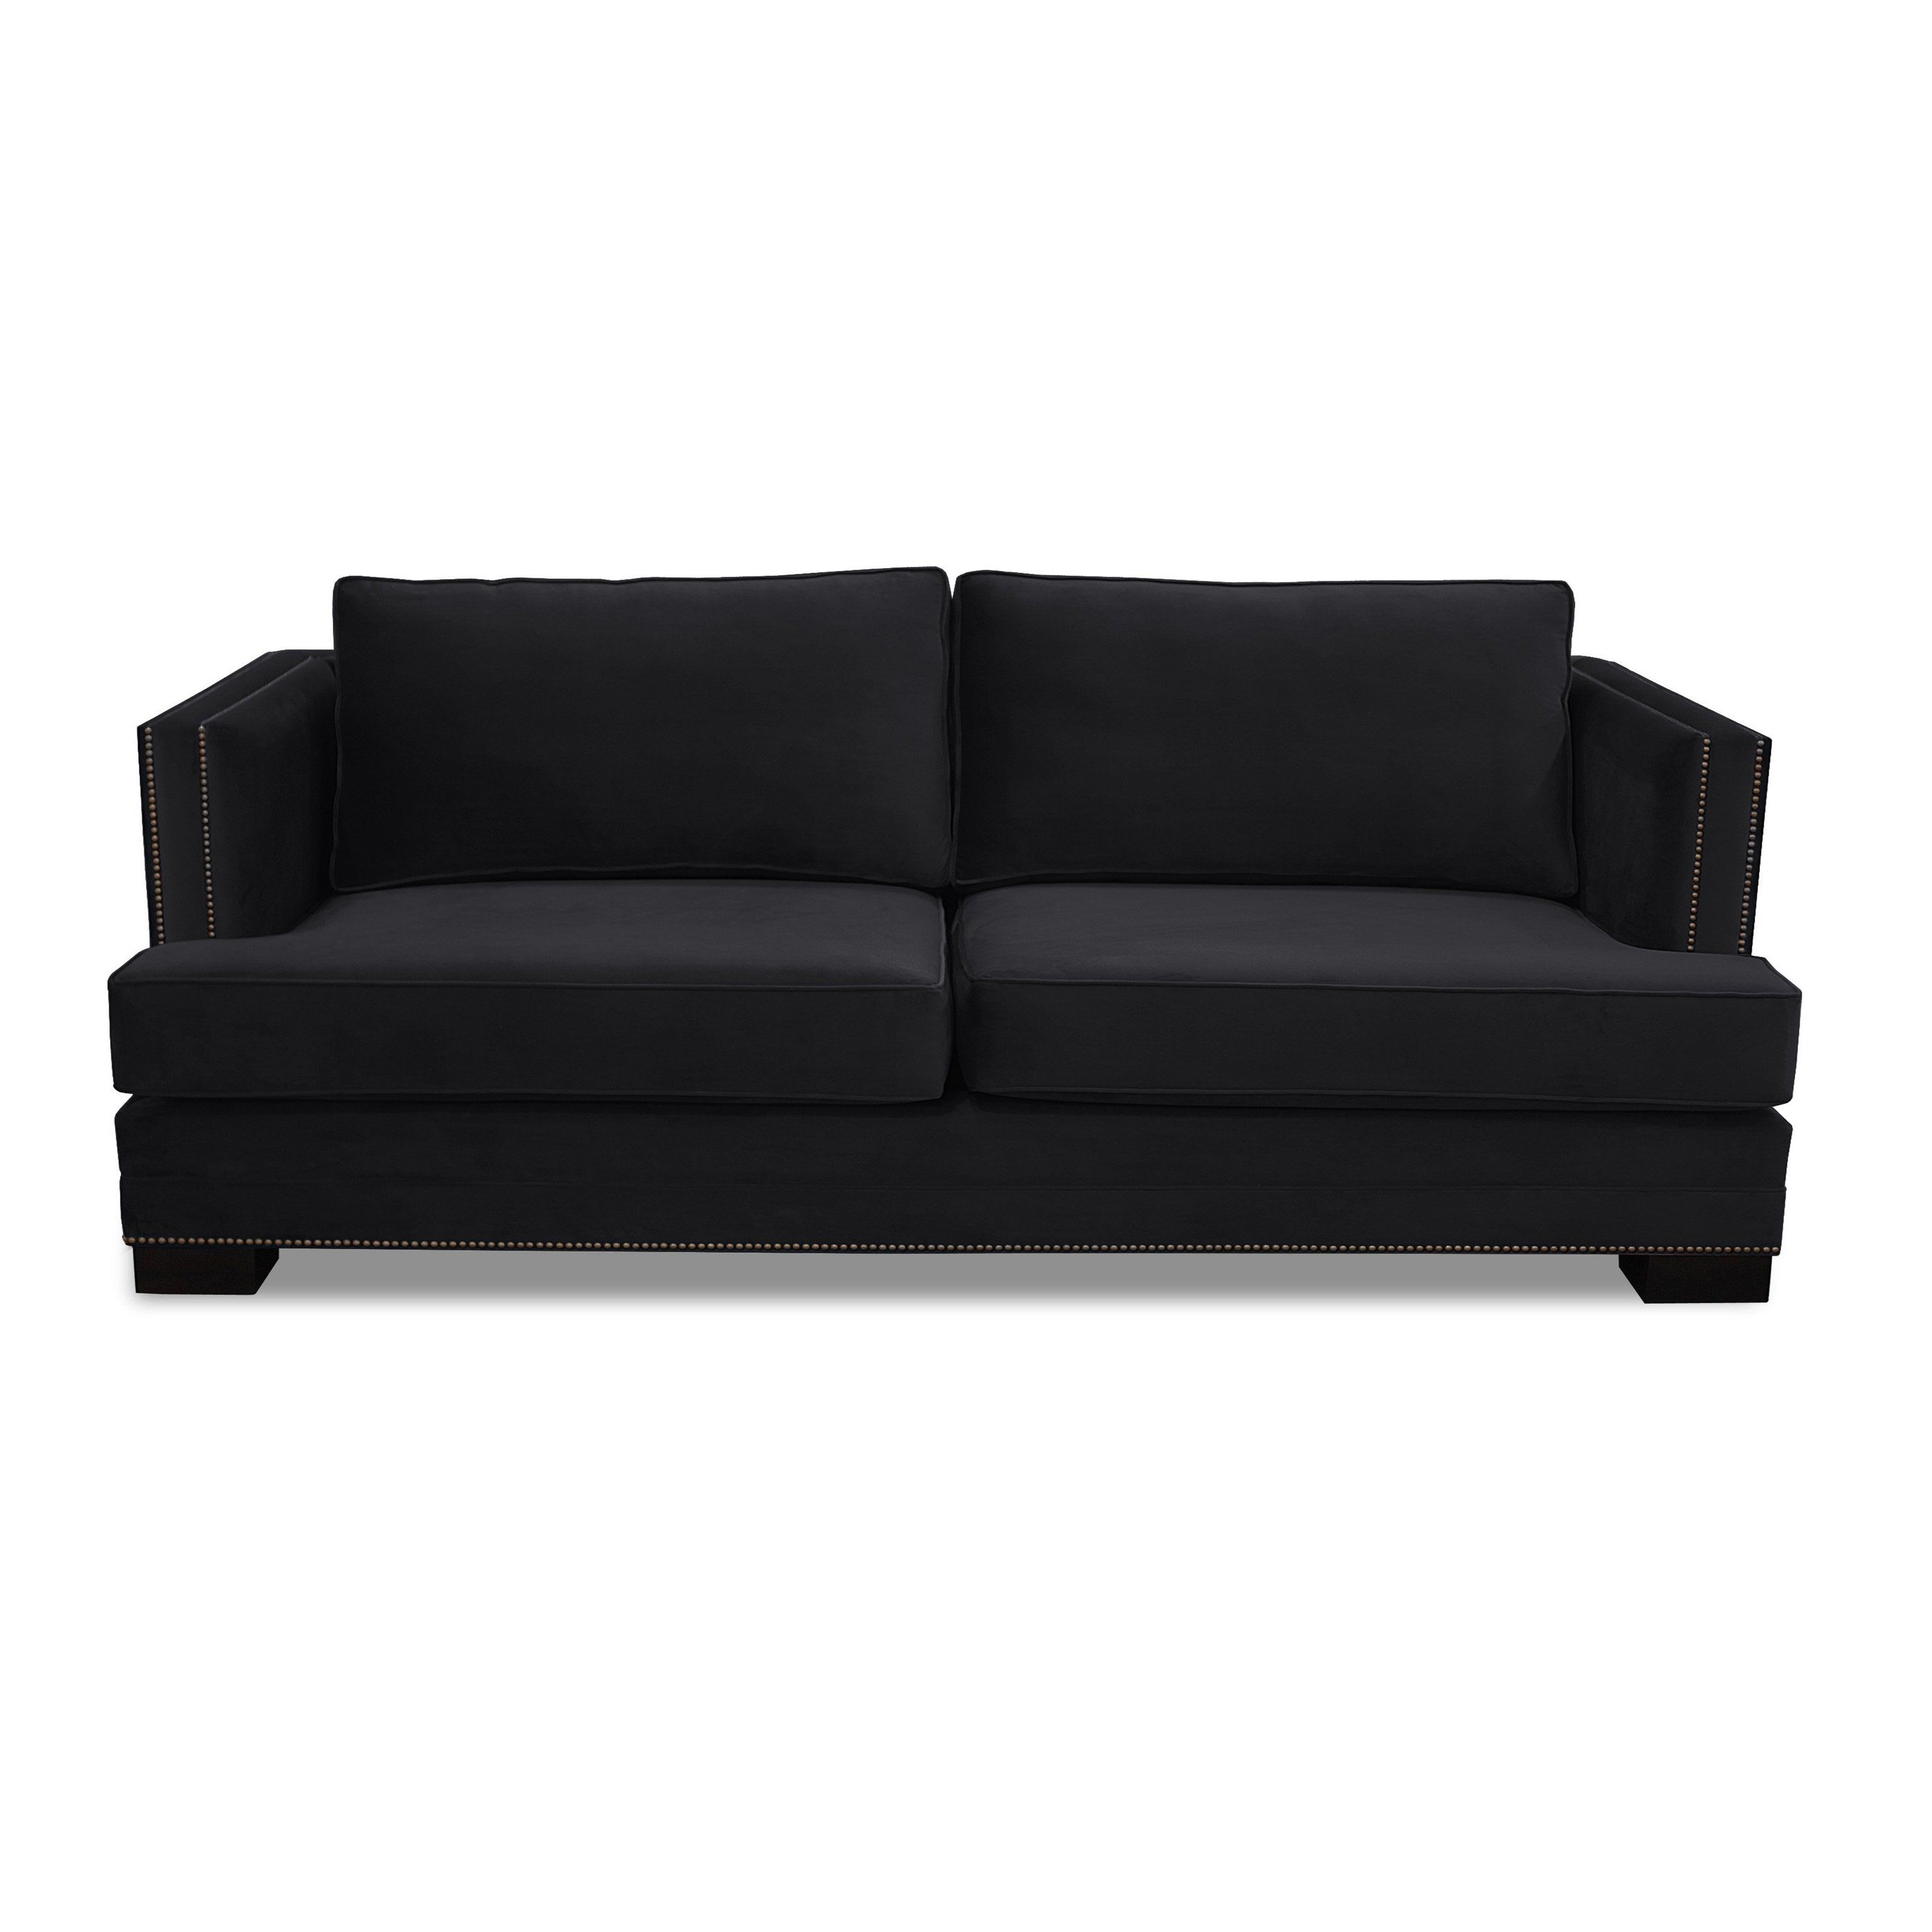 South Cone Lamore Velvet Sofa - From Hayneedlecom